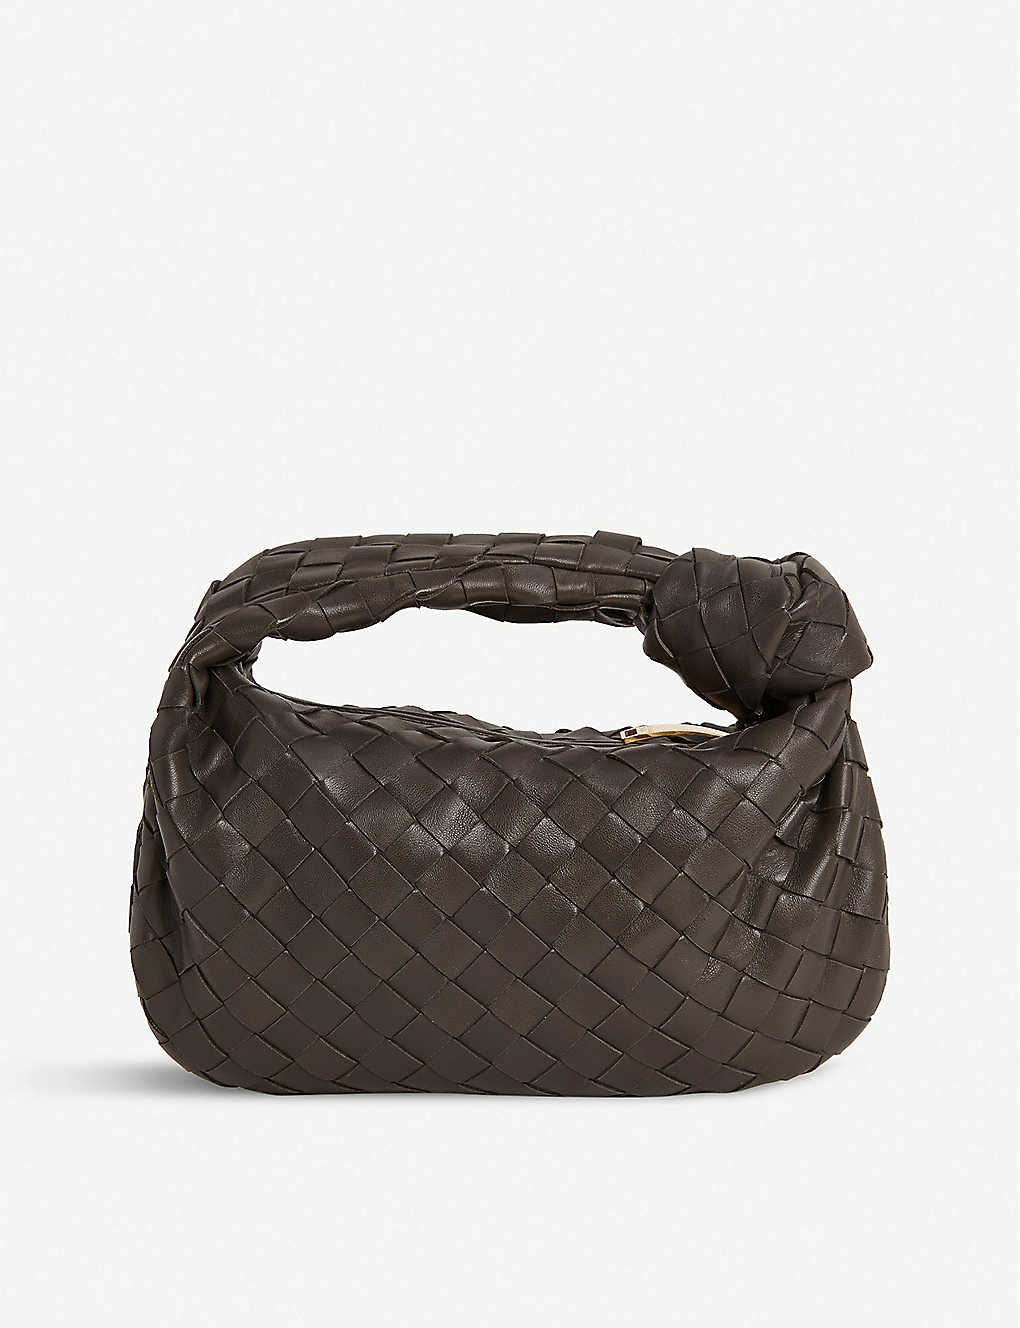 BOTTEGA VENETA: Jodie intrecciato mini leather hobo bag